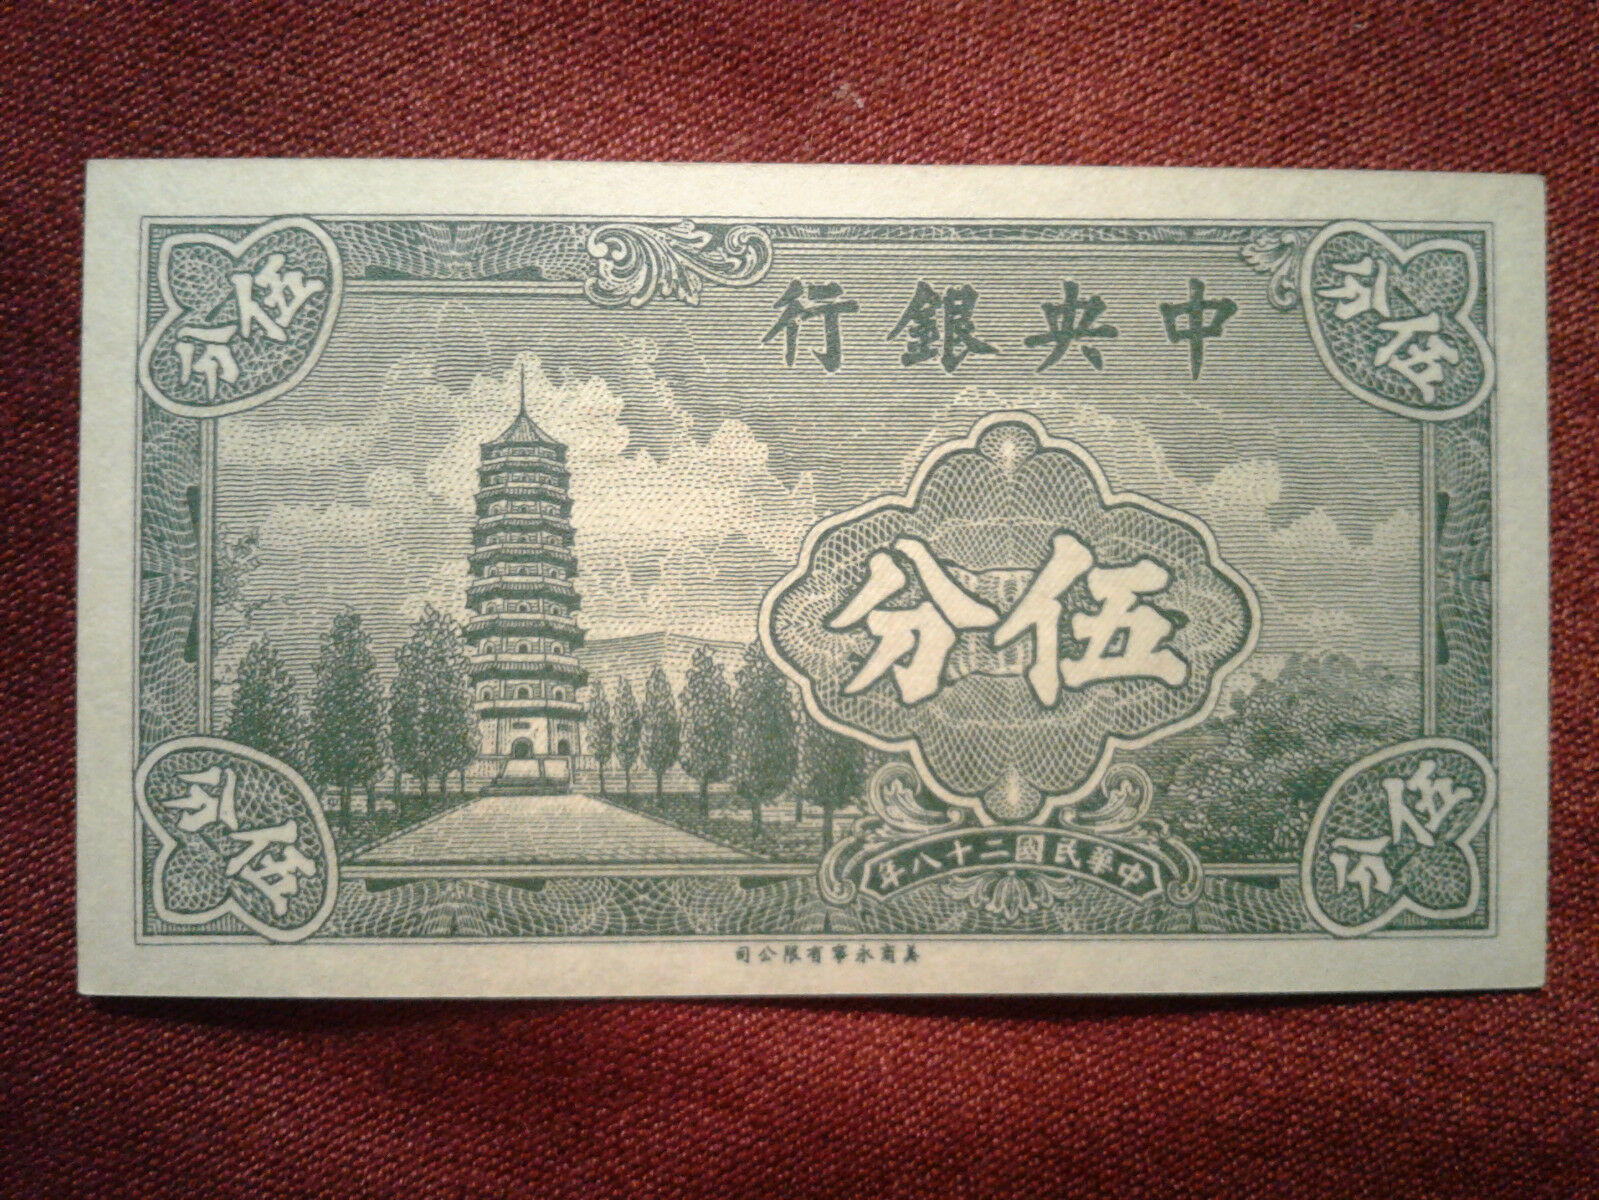 Central Bank of China Banknote 5 Cents 1939 P-225a *UNC* B-Z *# image 4